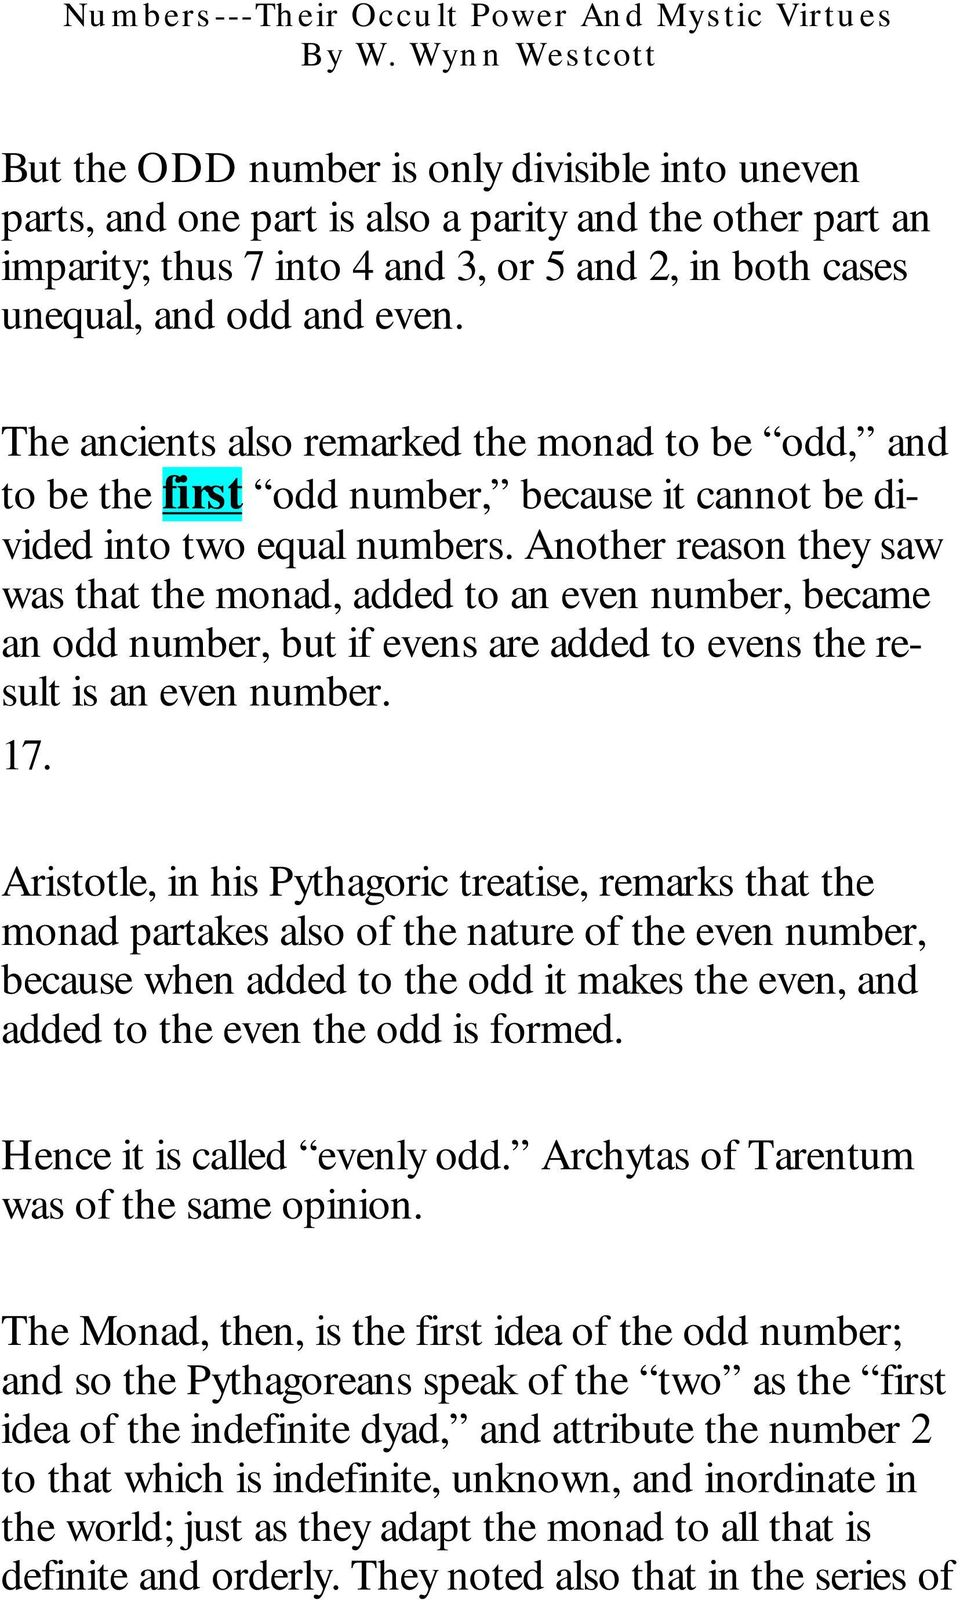 Another reason they saw was that the monad, added to an even number, became an odd number, but if evens are added to evens the result is an even number. 17.